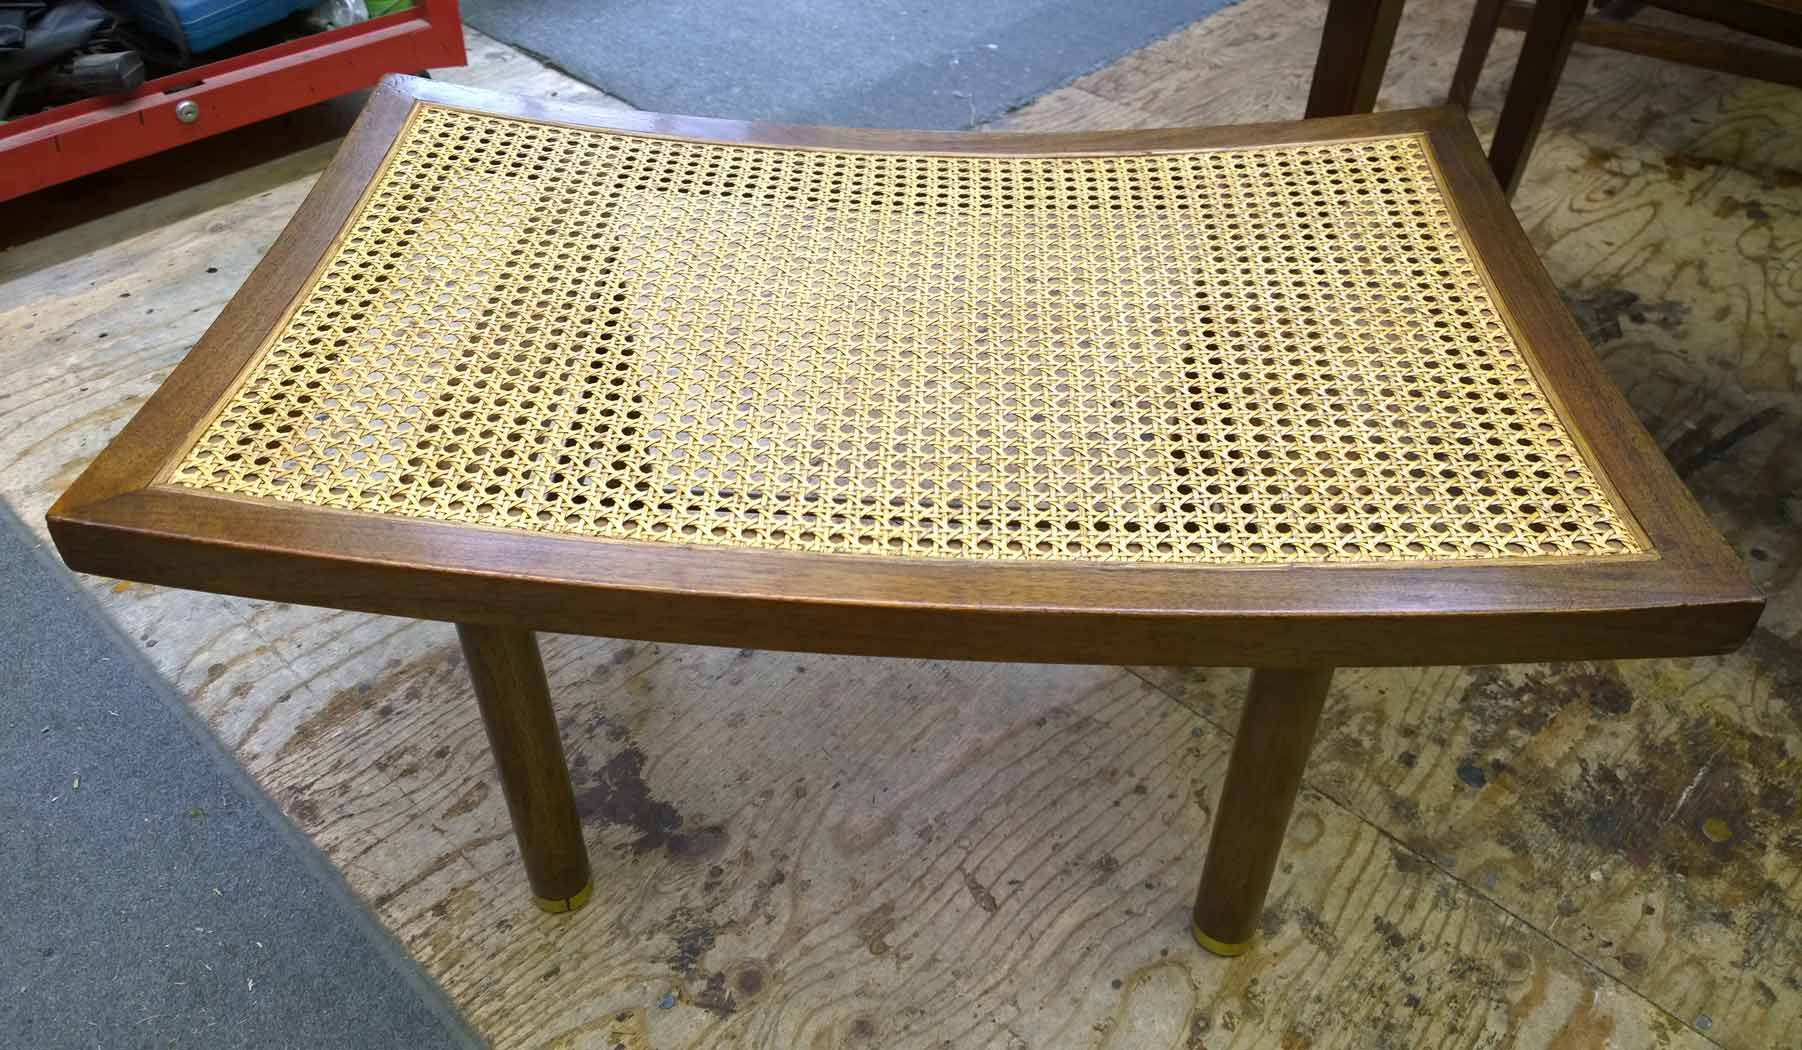 Walnut bench with cane seat replaced